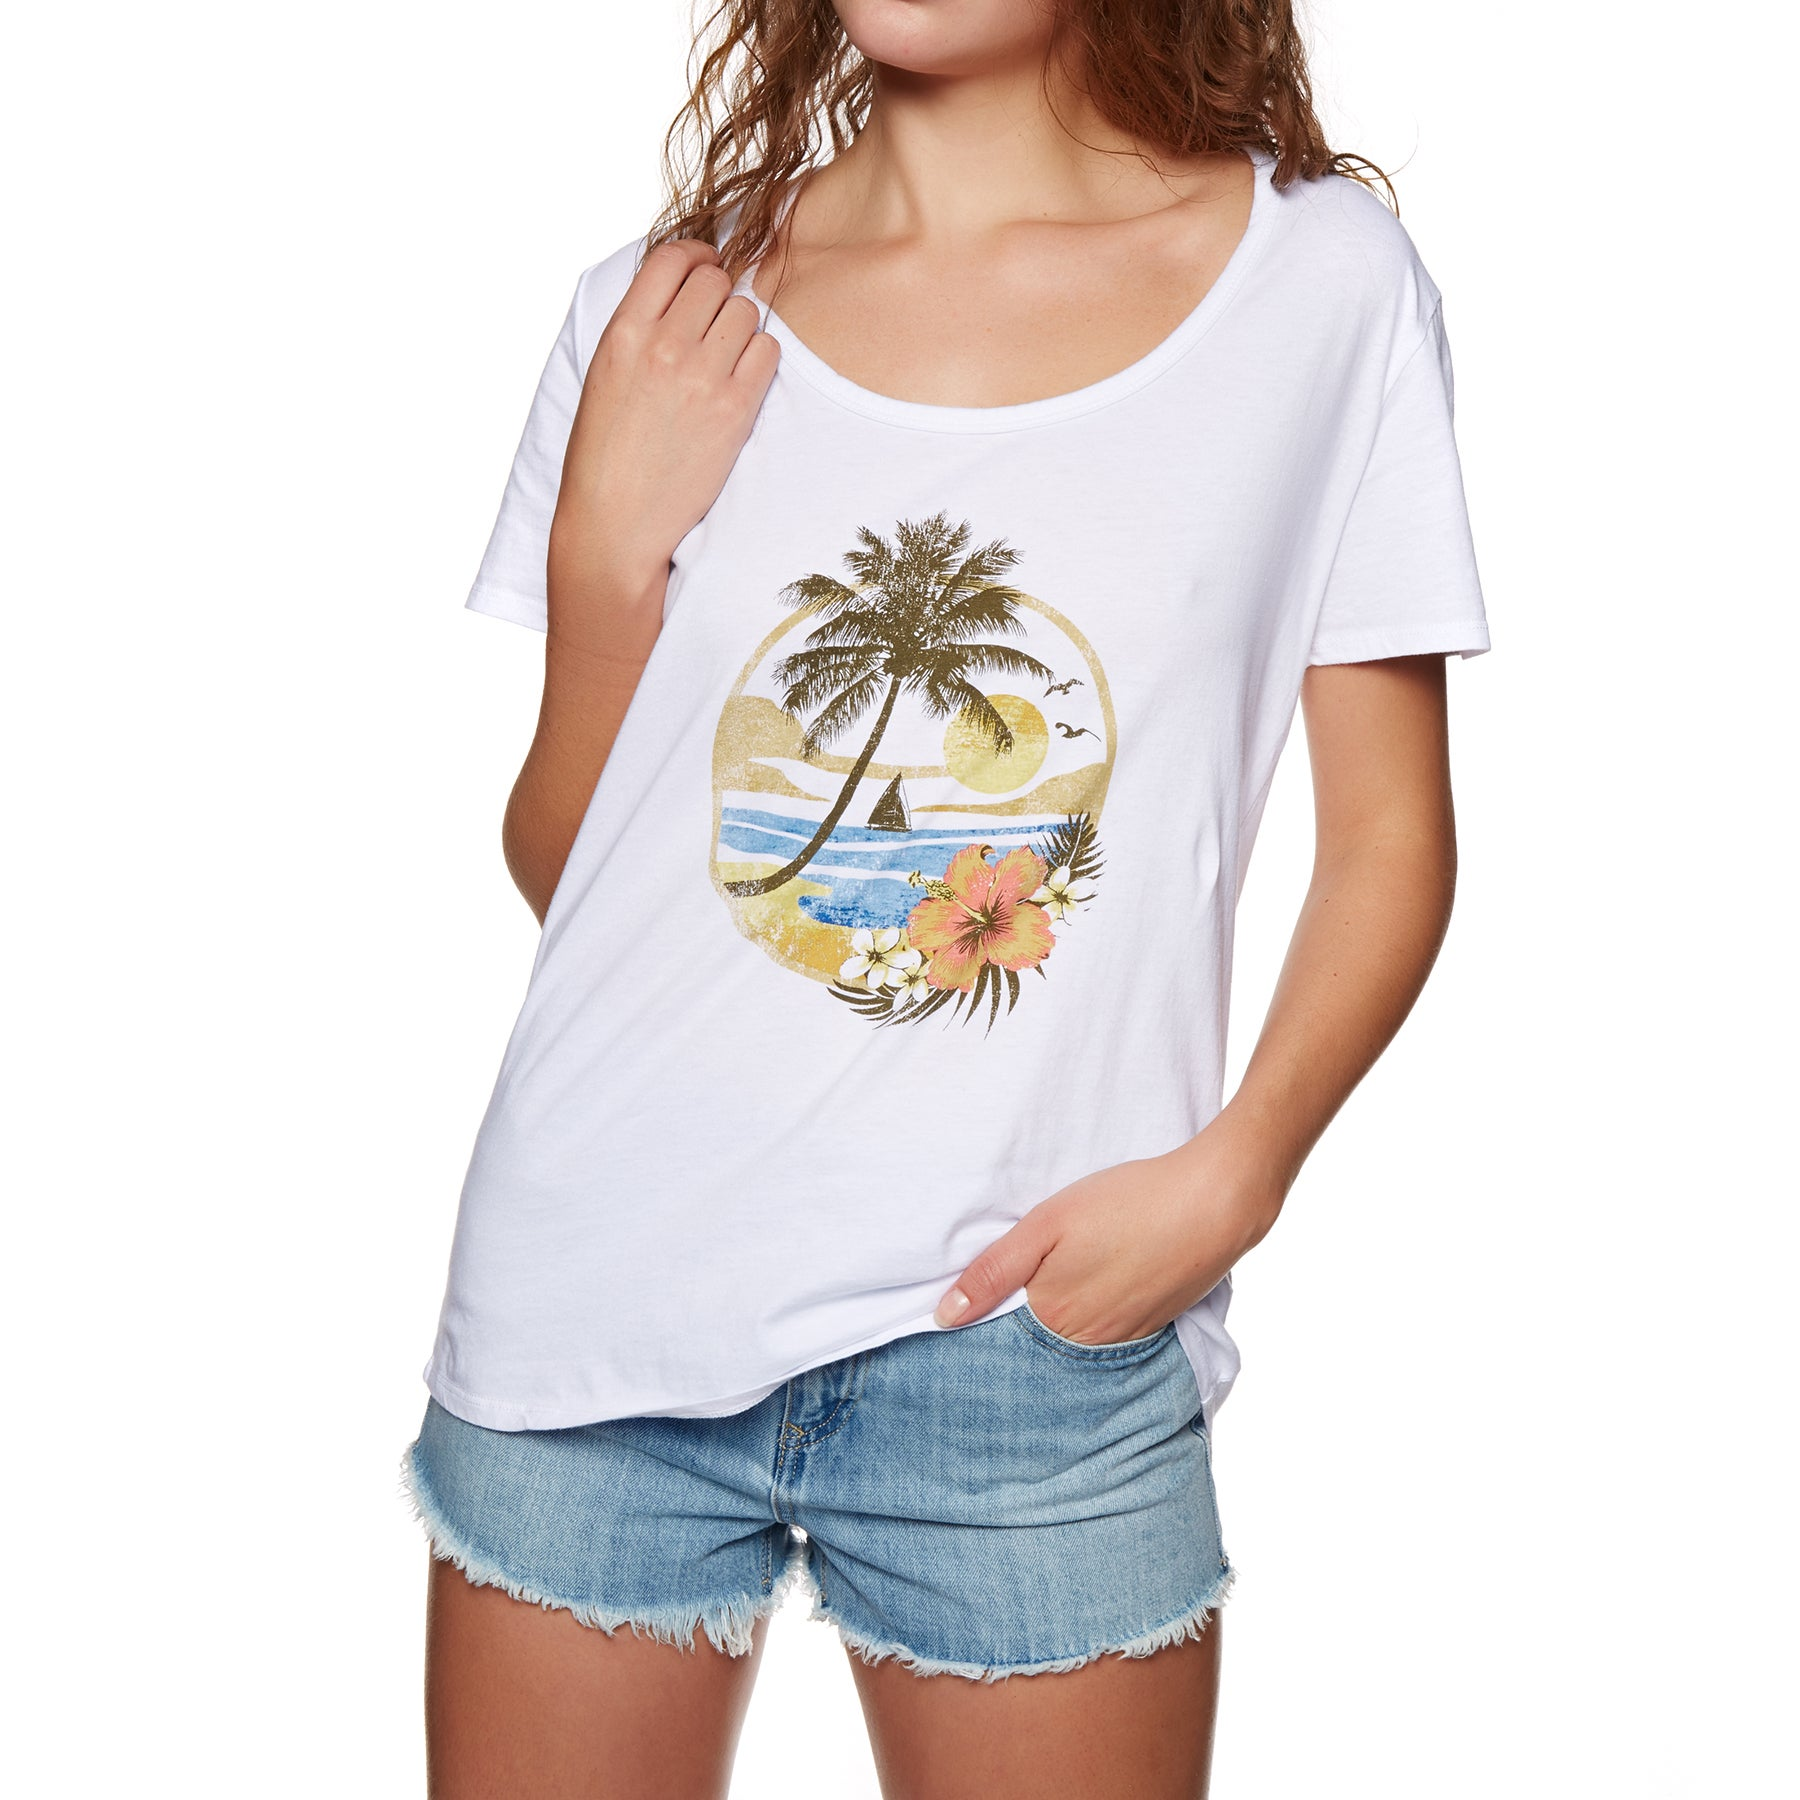 SWELL Tropical Paradise Ladies Short Sleeve T-Shirt